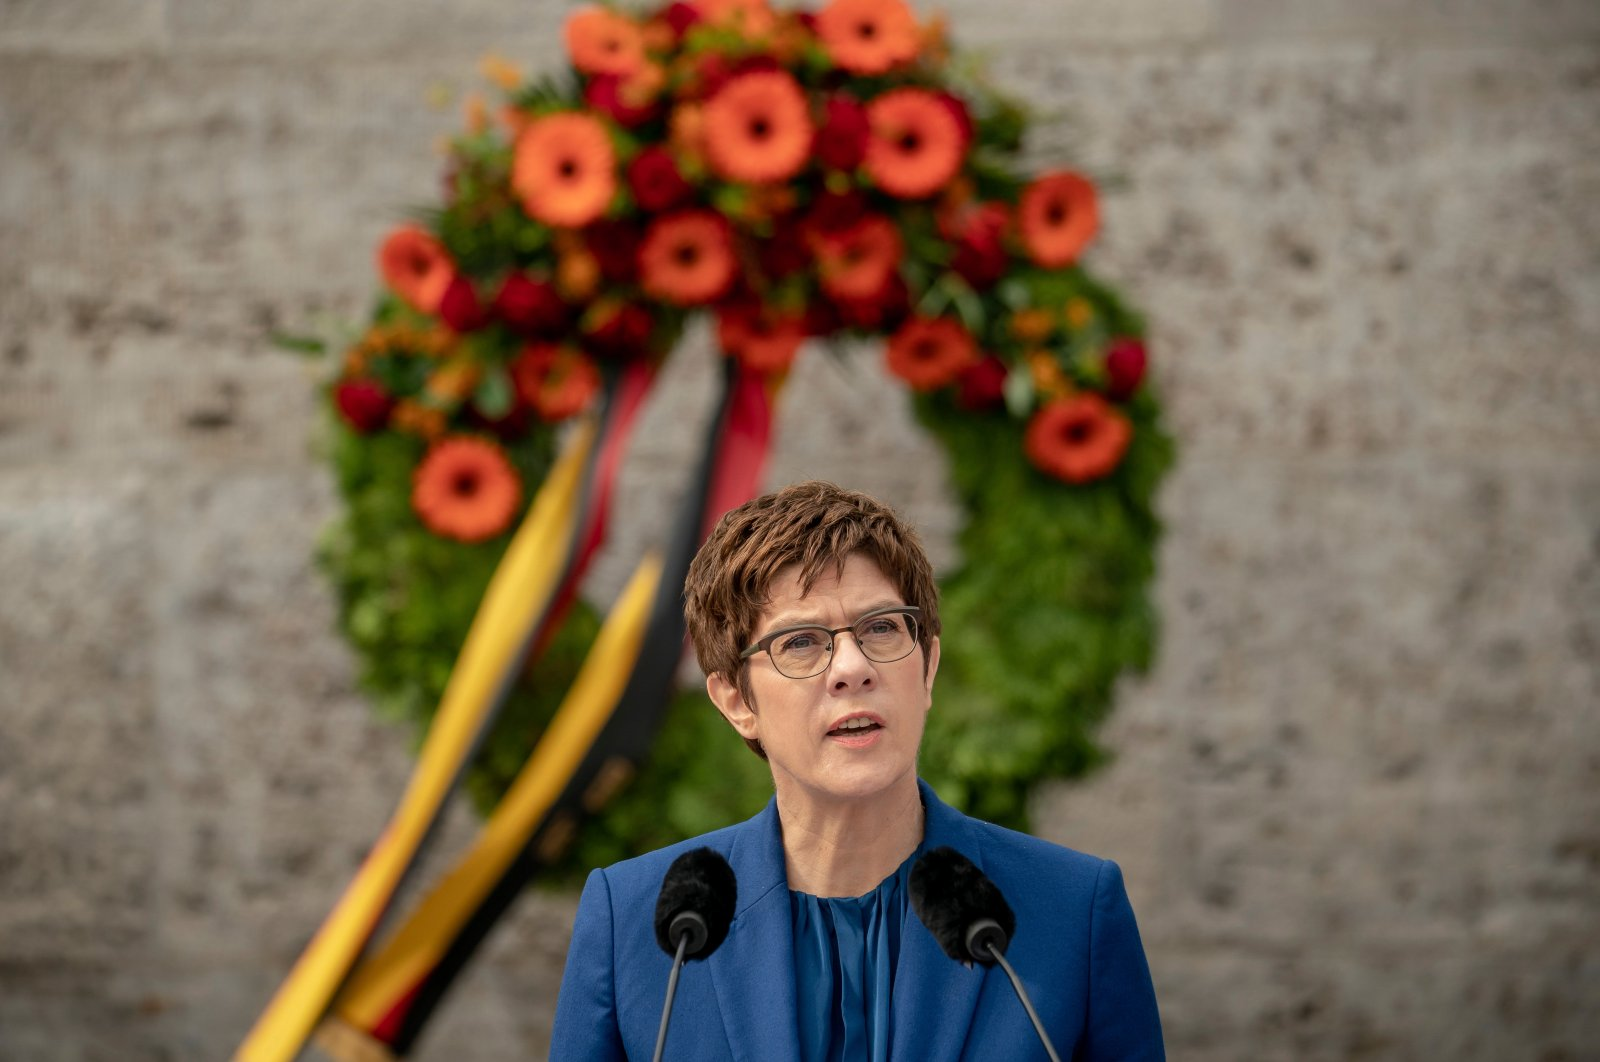 Annegret Kramp-Karrenbauer, German minister of defense, delivers a speech at the Ploetzense Lake Memorial in memory of those murdered in the resistance against the National Socialist tyranny in Berlin, Germany, July 20, 2020. (AP Photo)